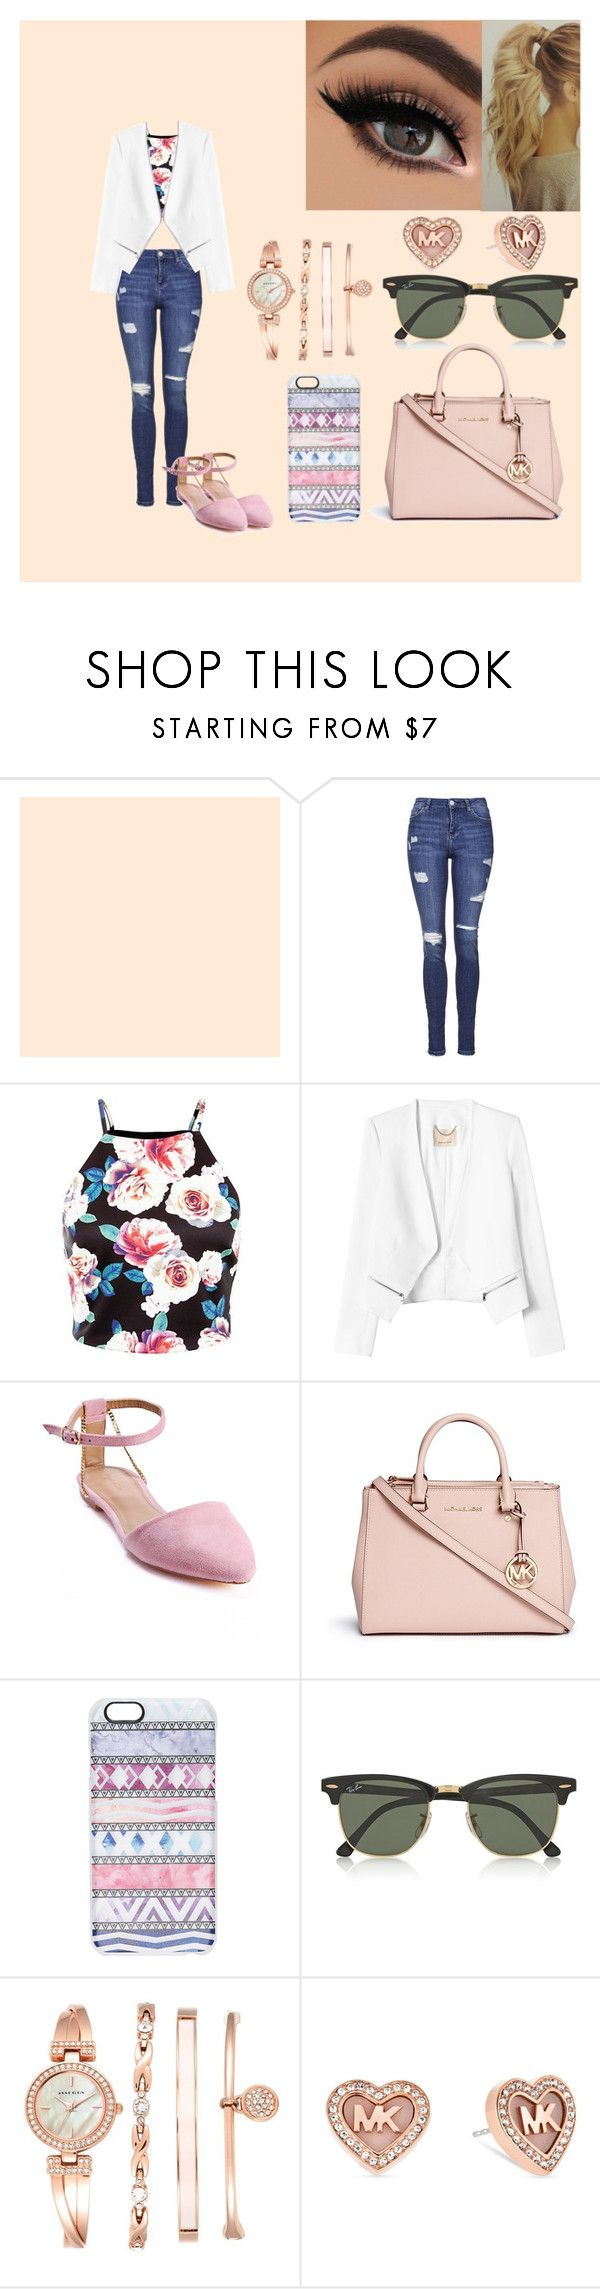 """yeah little classy, but w.e"" by veeruska-1 on Polyvore featuring Topshop, Rebecca Taylor, Sergio Bari, Michael Kors, Casetify, Ray-Ban, Anne Klein, women's clothing, women's fashion and women"